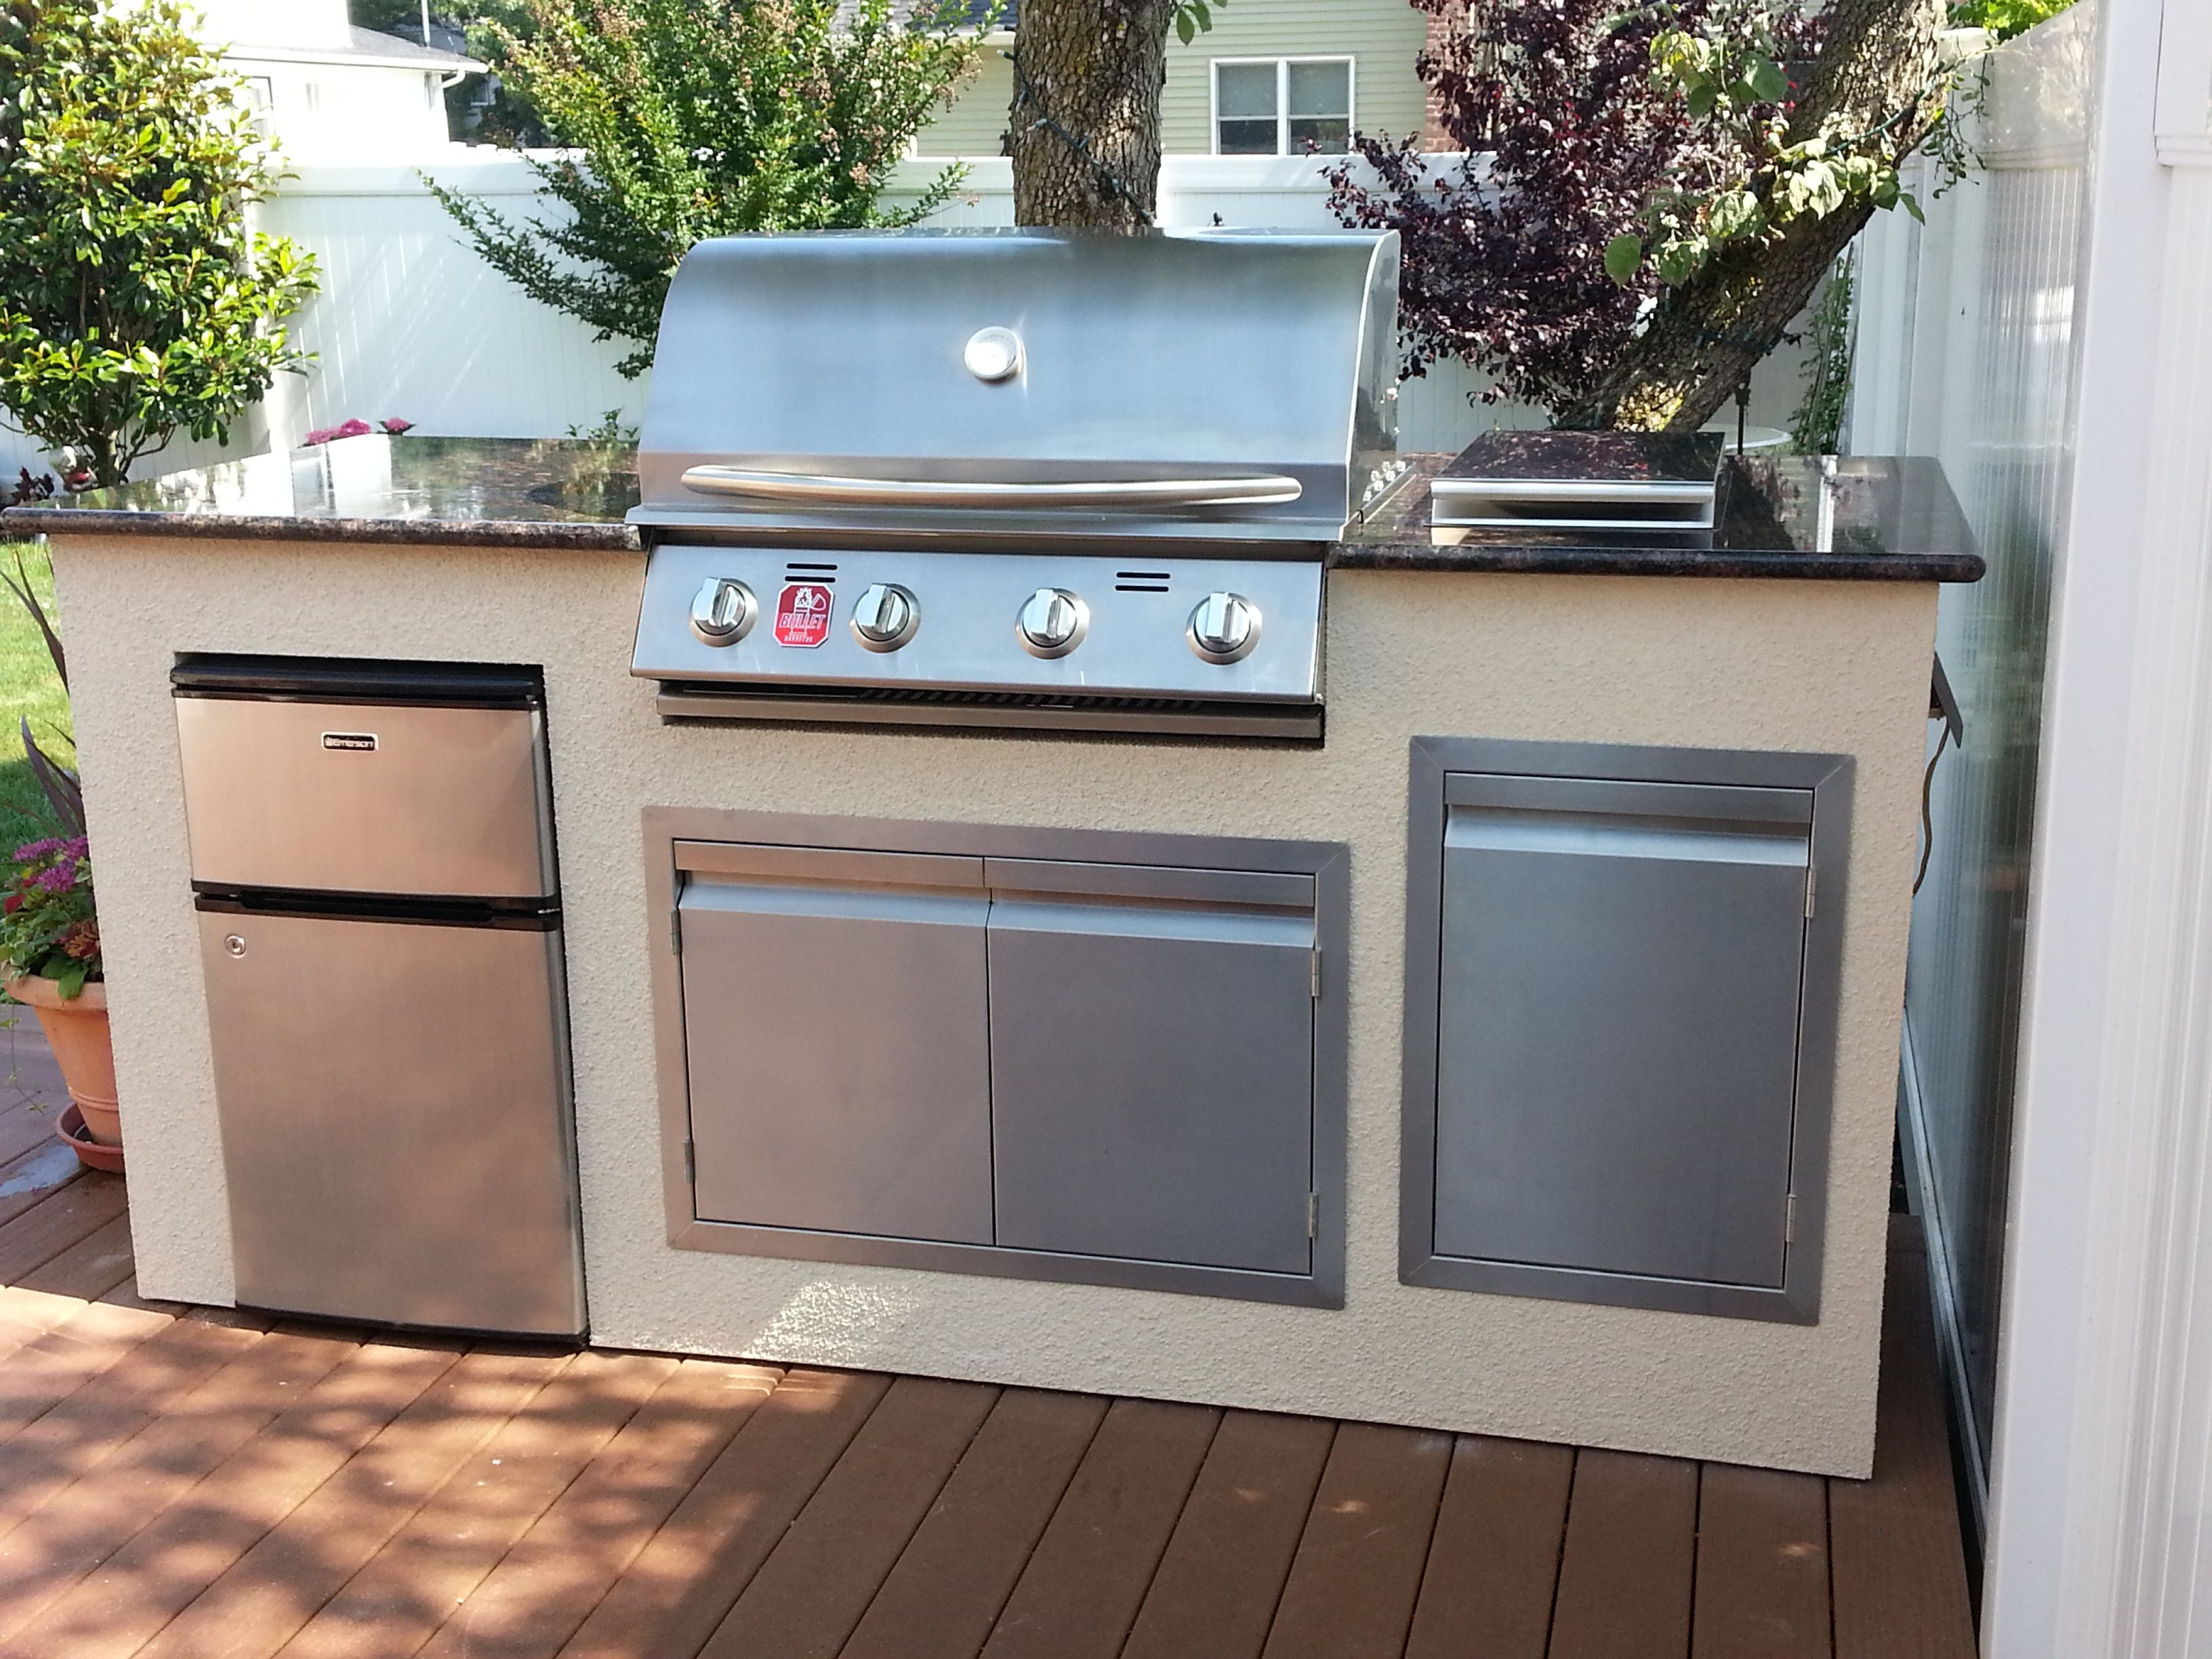 35 best bbq coach clients outdoor kitchens images on pinterest arthur giordano built this beautiful bbq island on a wooden deck bbq coach frames are